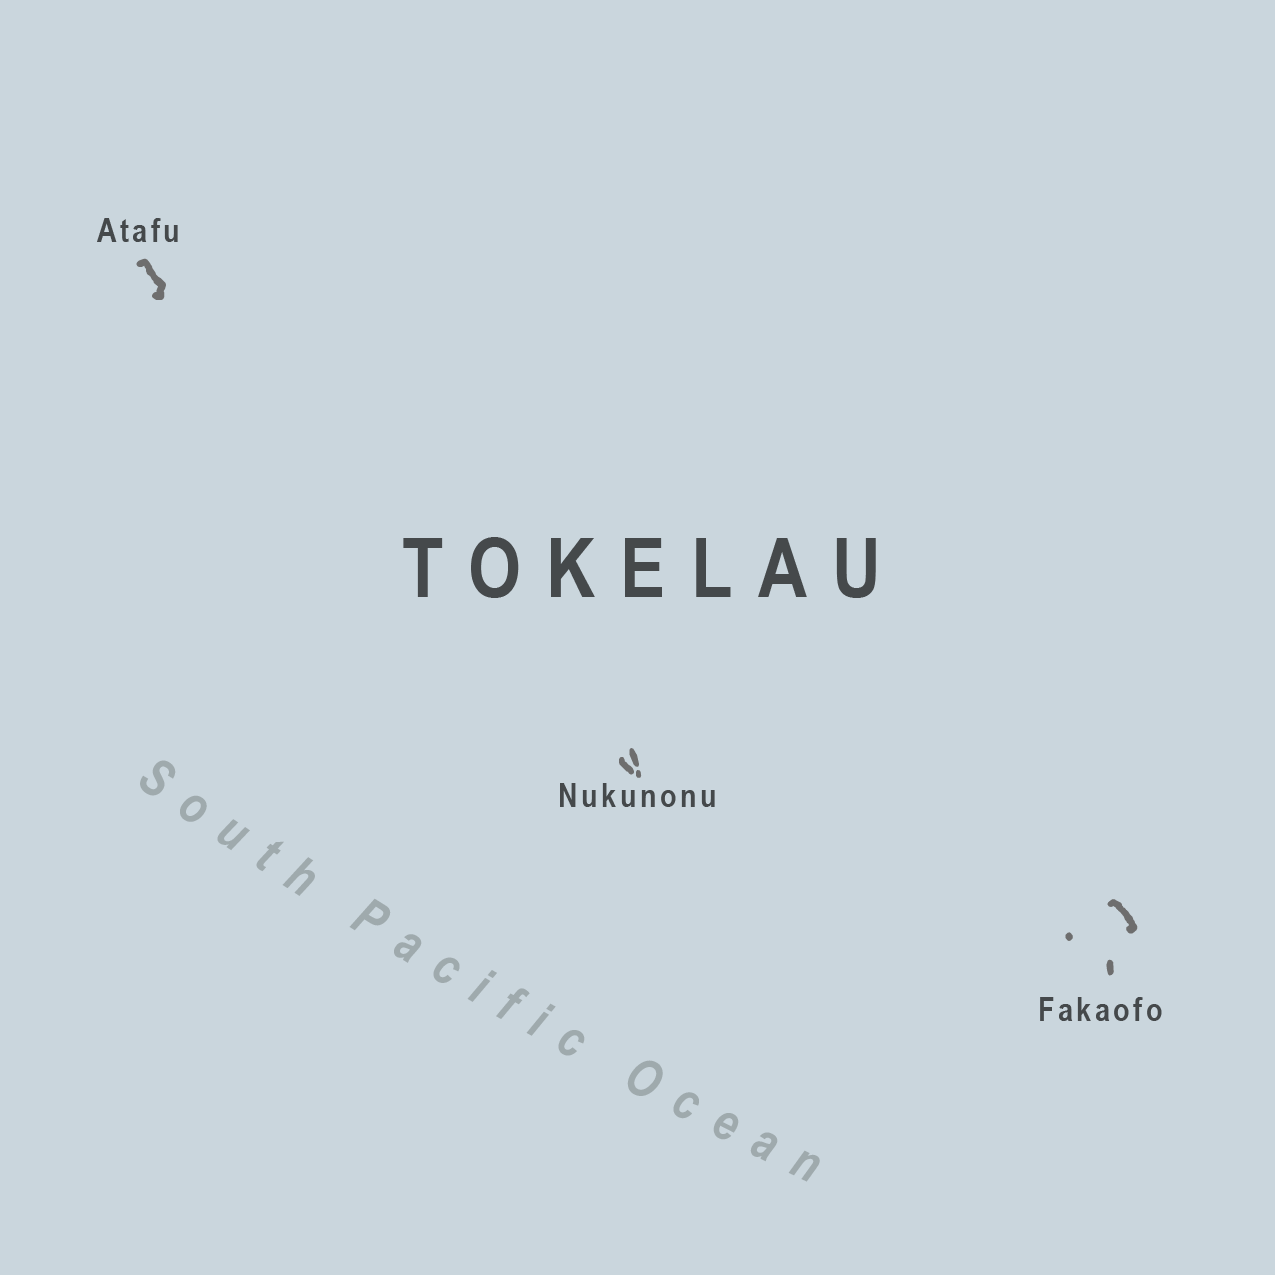 Map - Tokelau